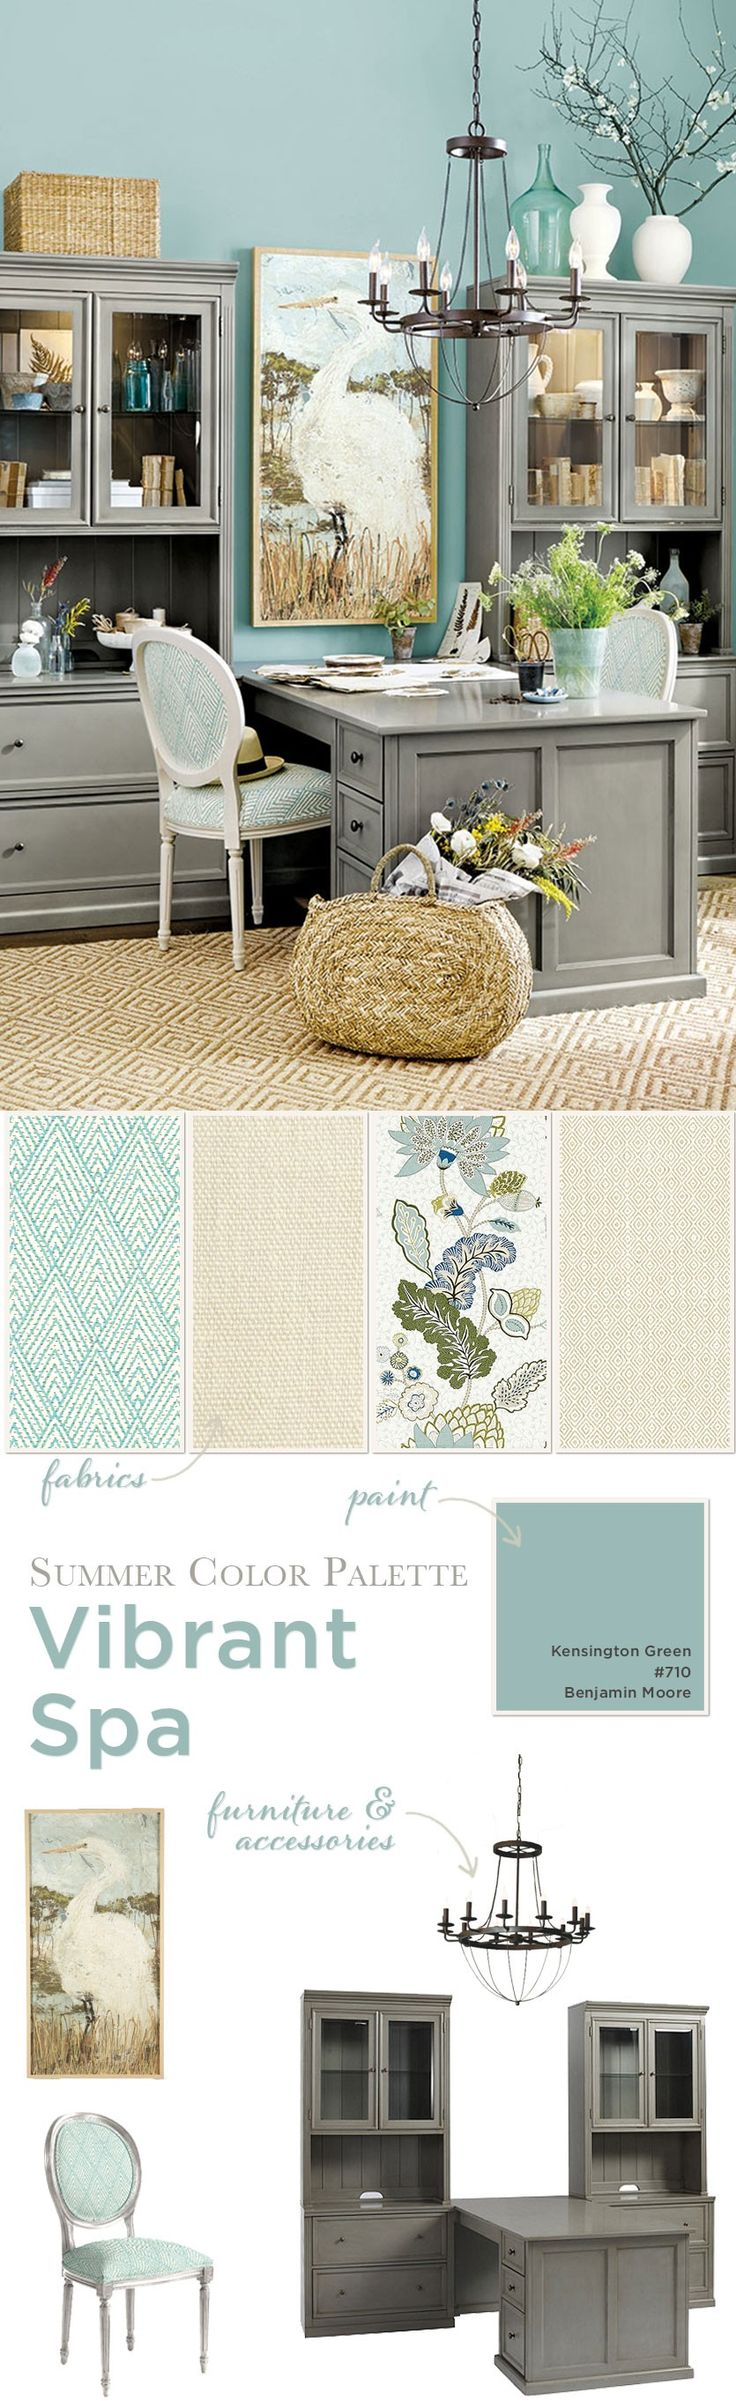 Coastal color palette in a home office